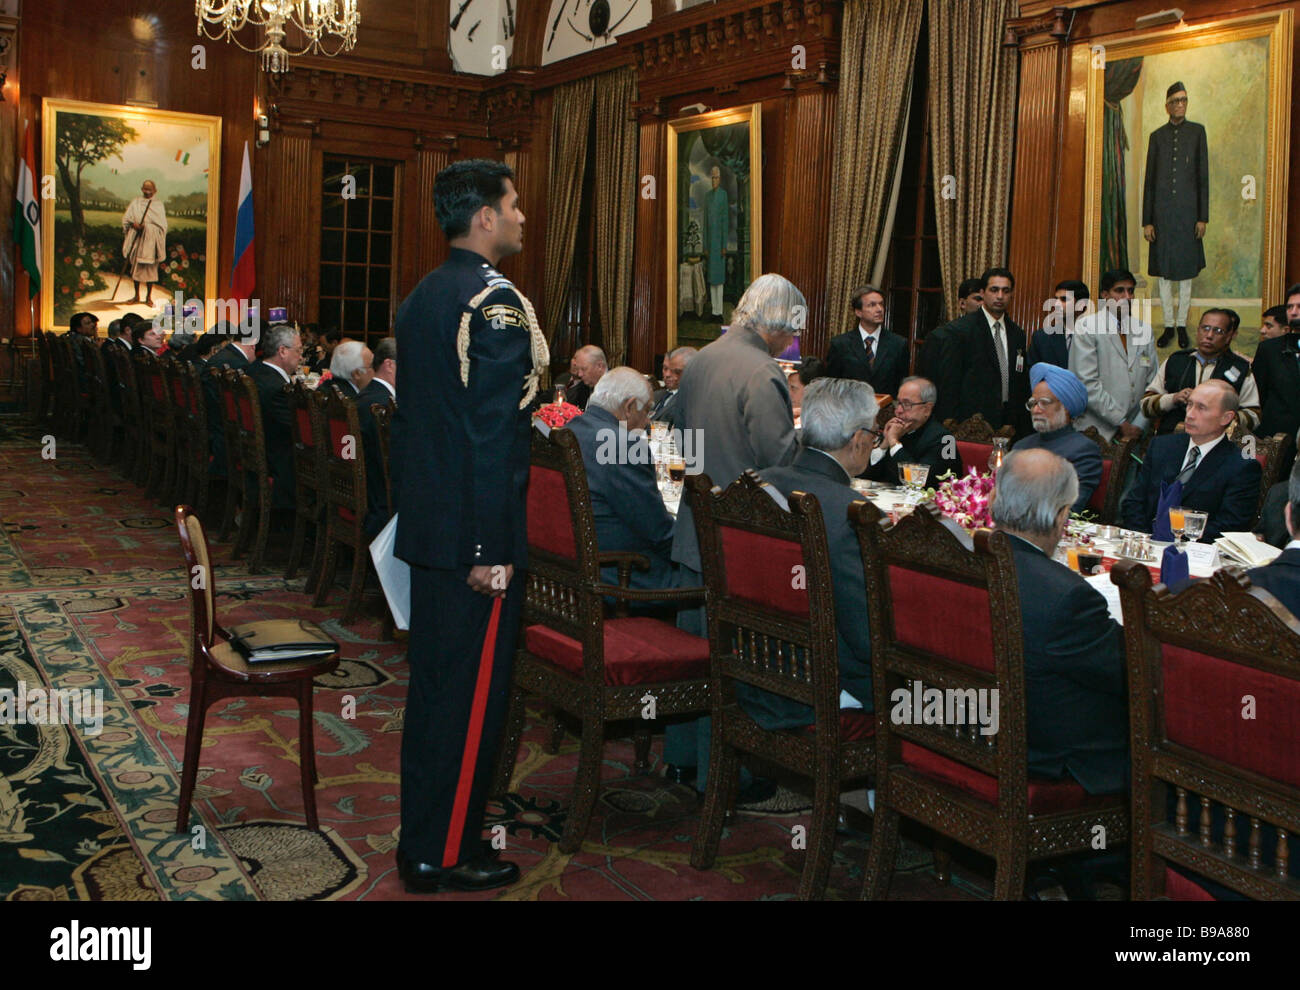 An official reception in honor of the Russian head of state at the Rashtrapati Bhavan official presidential residence - Stock Image